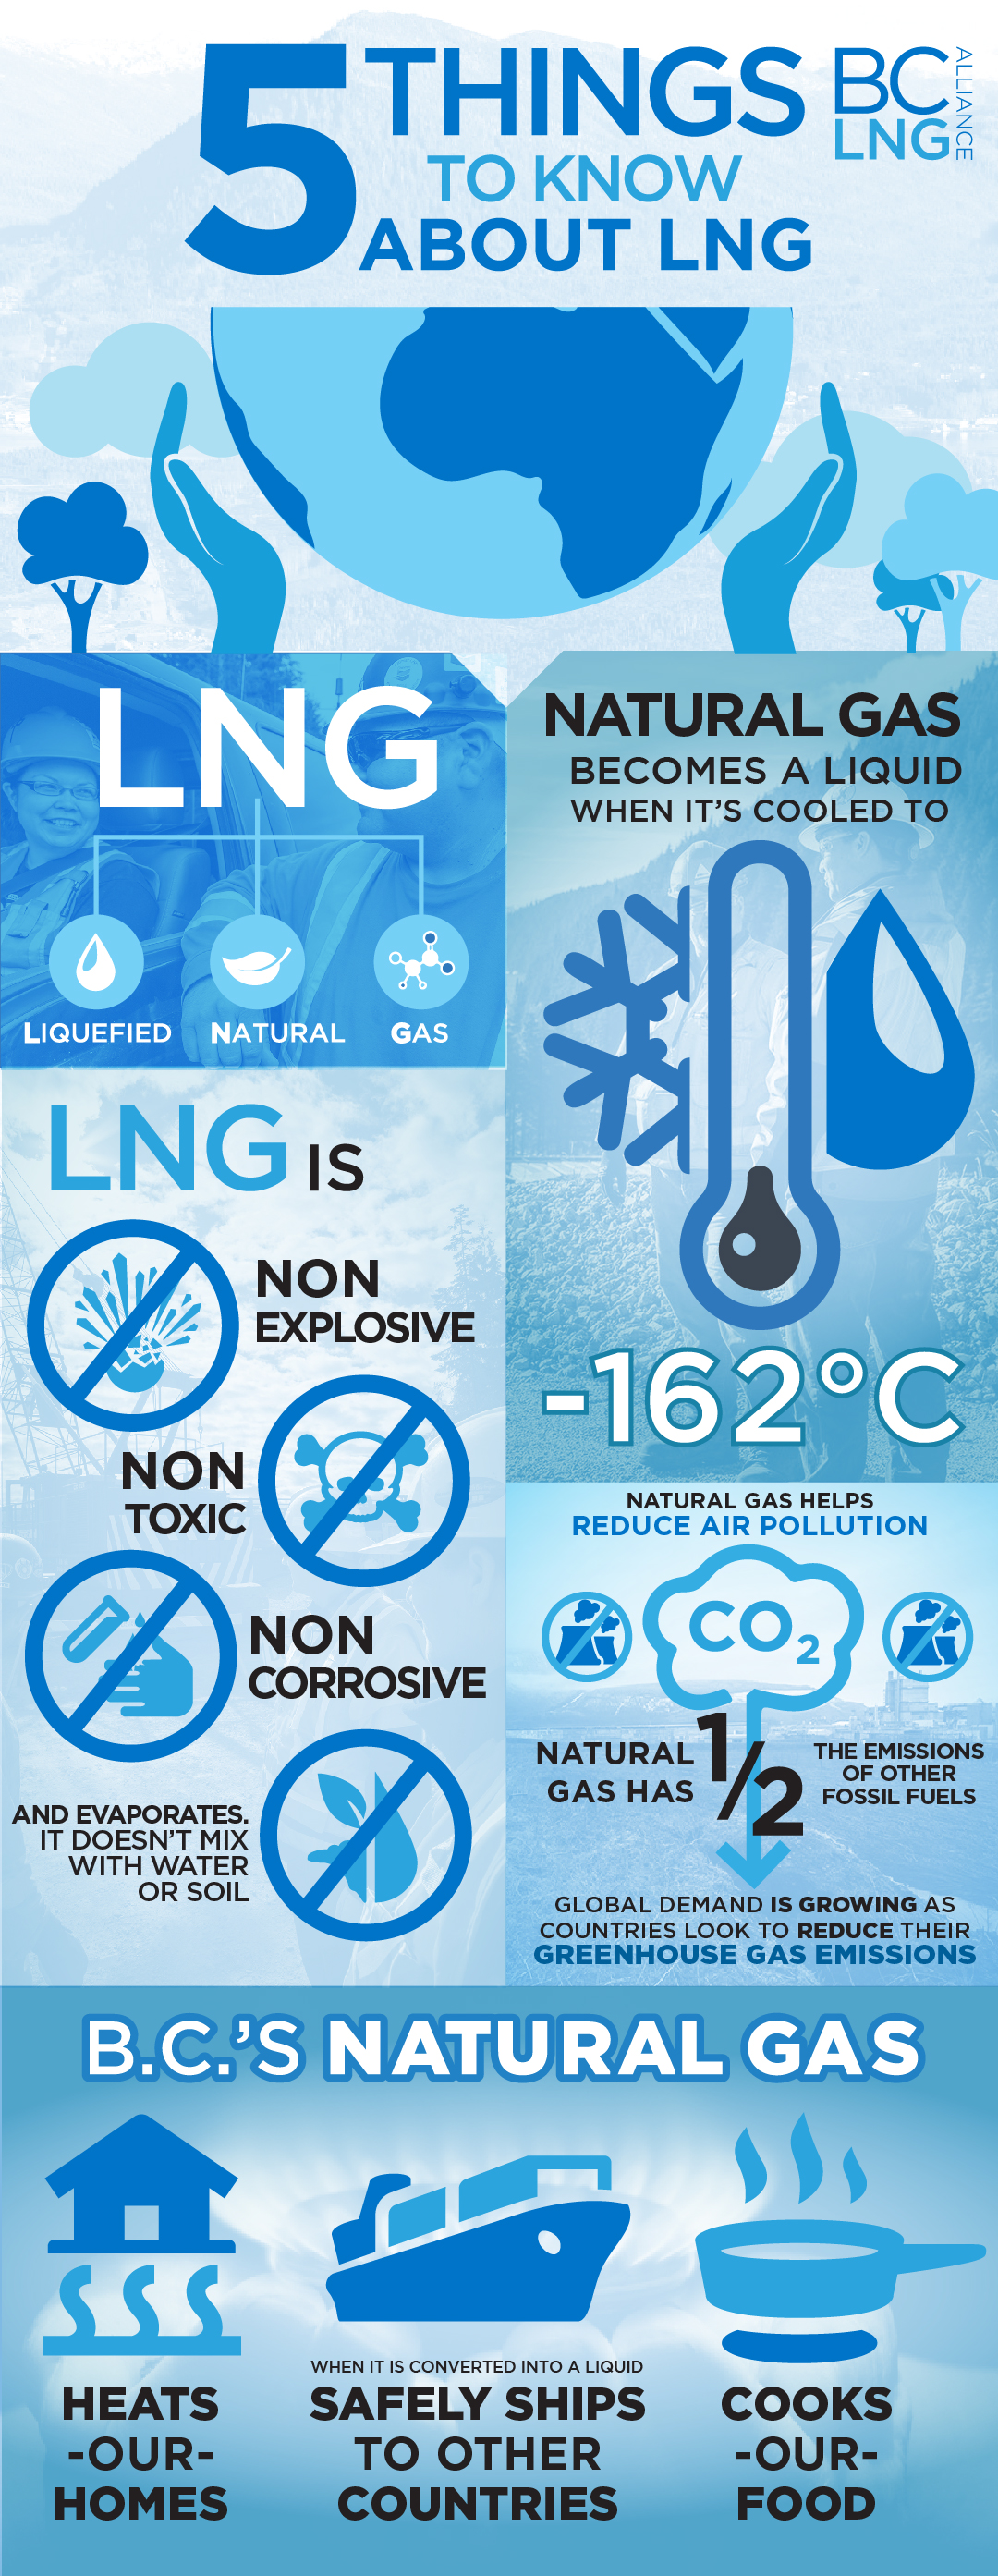 LNG 5 Things to Know Infographic_v5-01.jpg